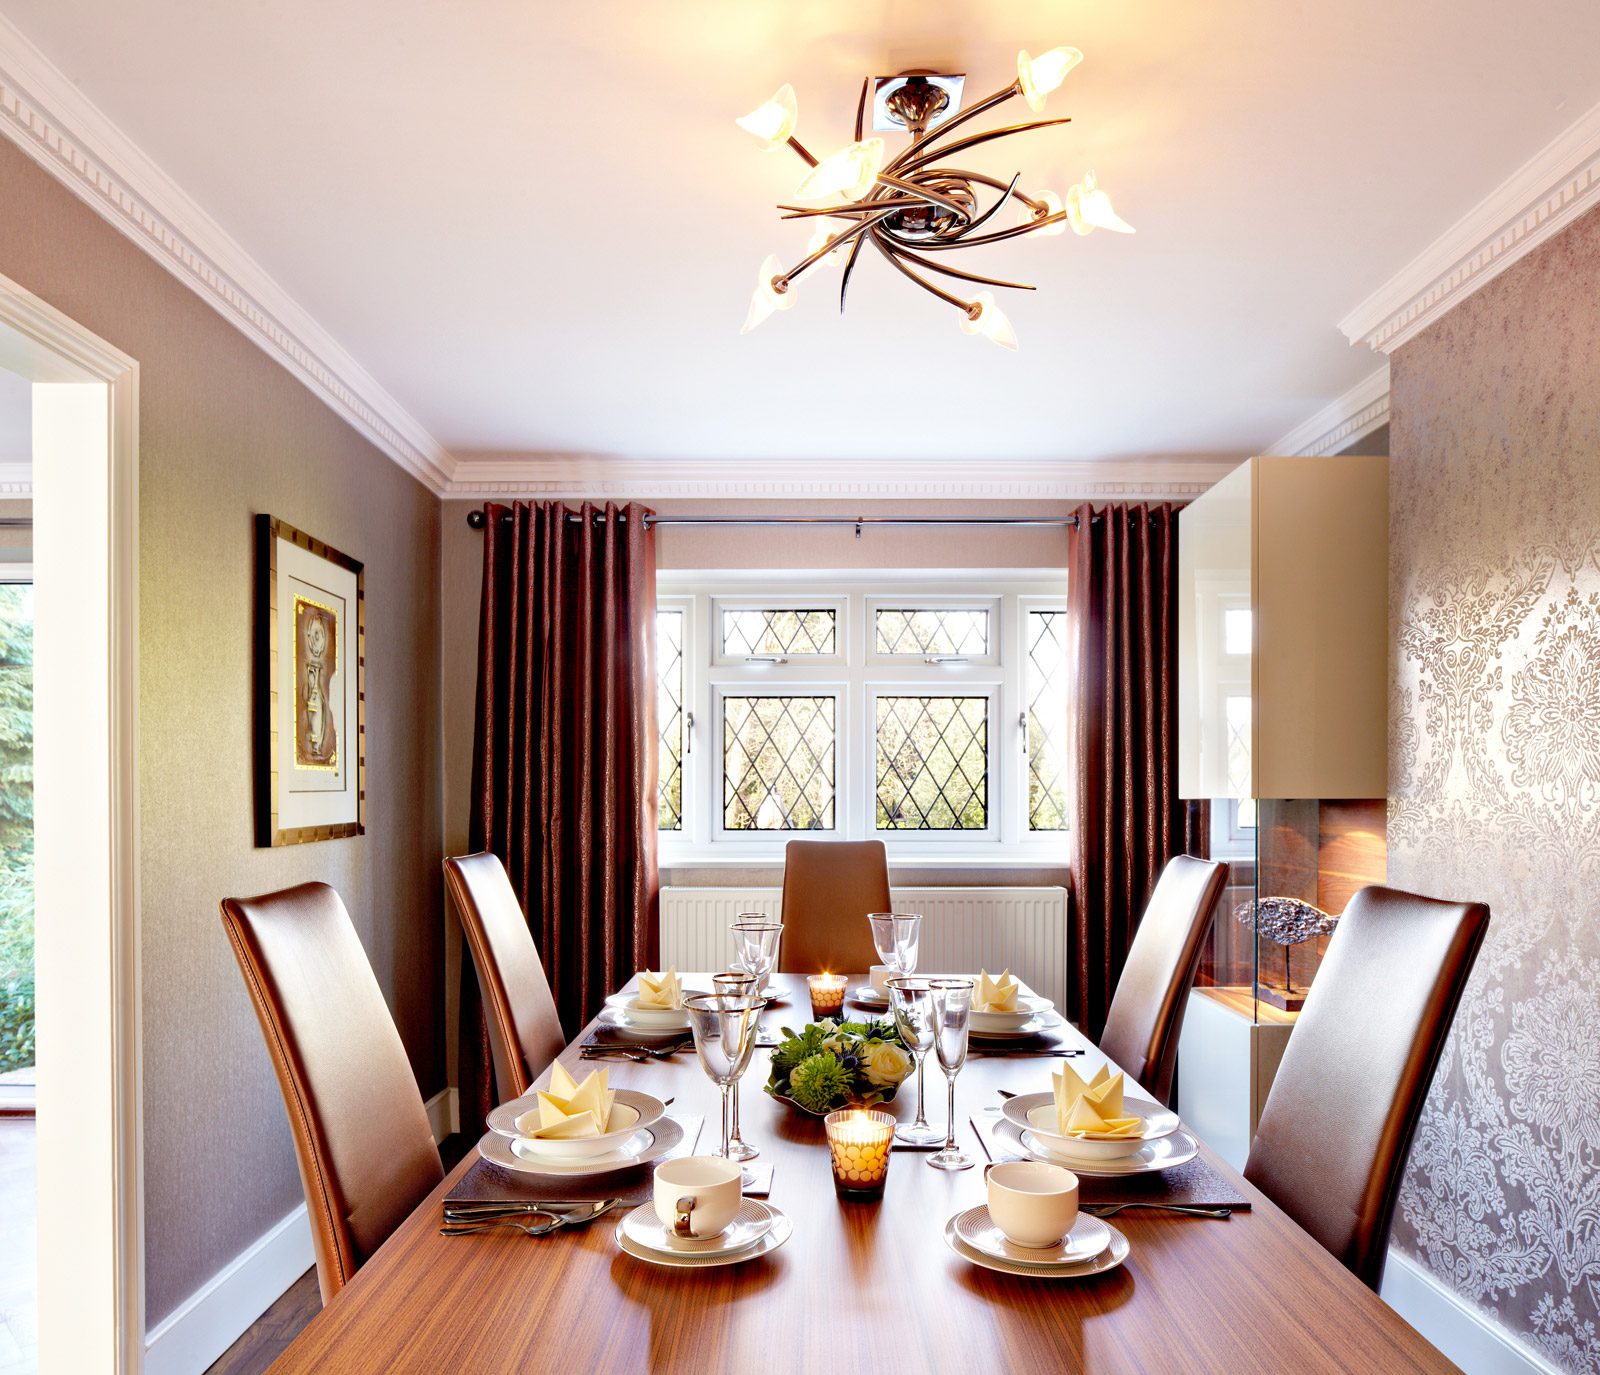 Kitchens-and-Dining-rooms